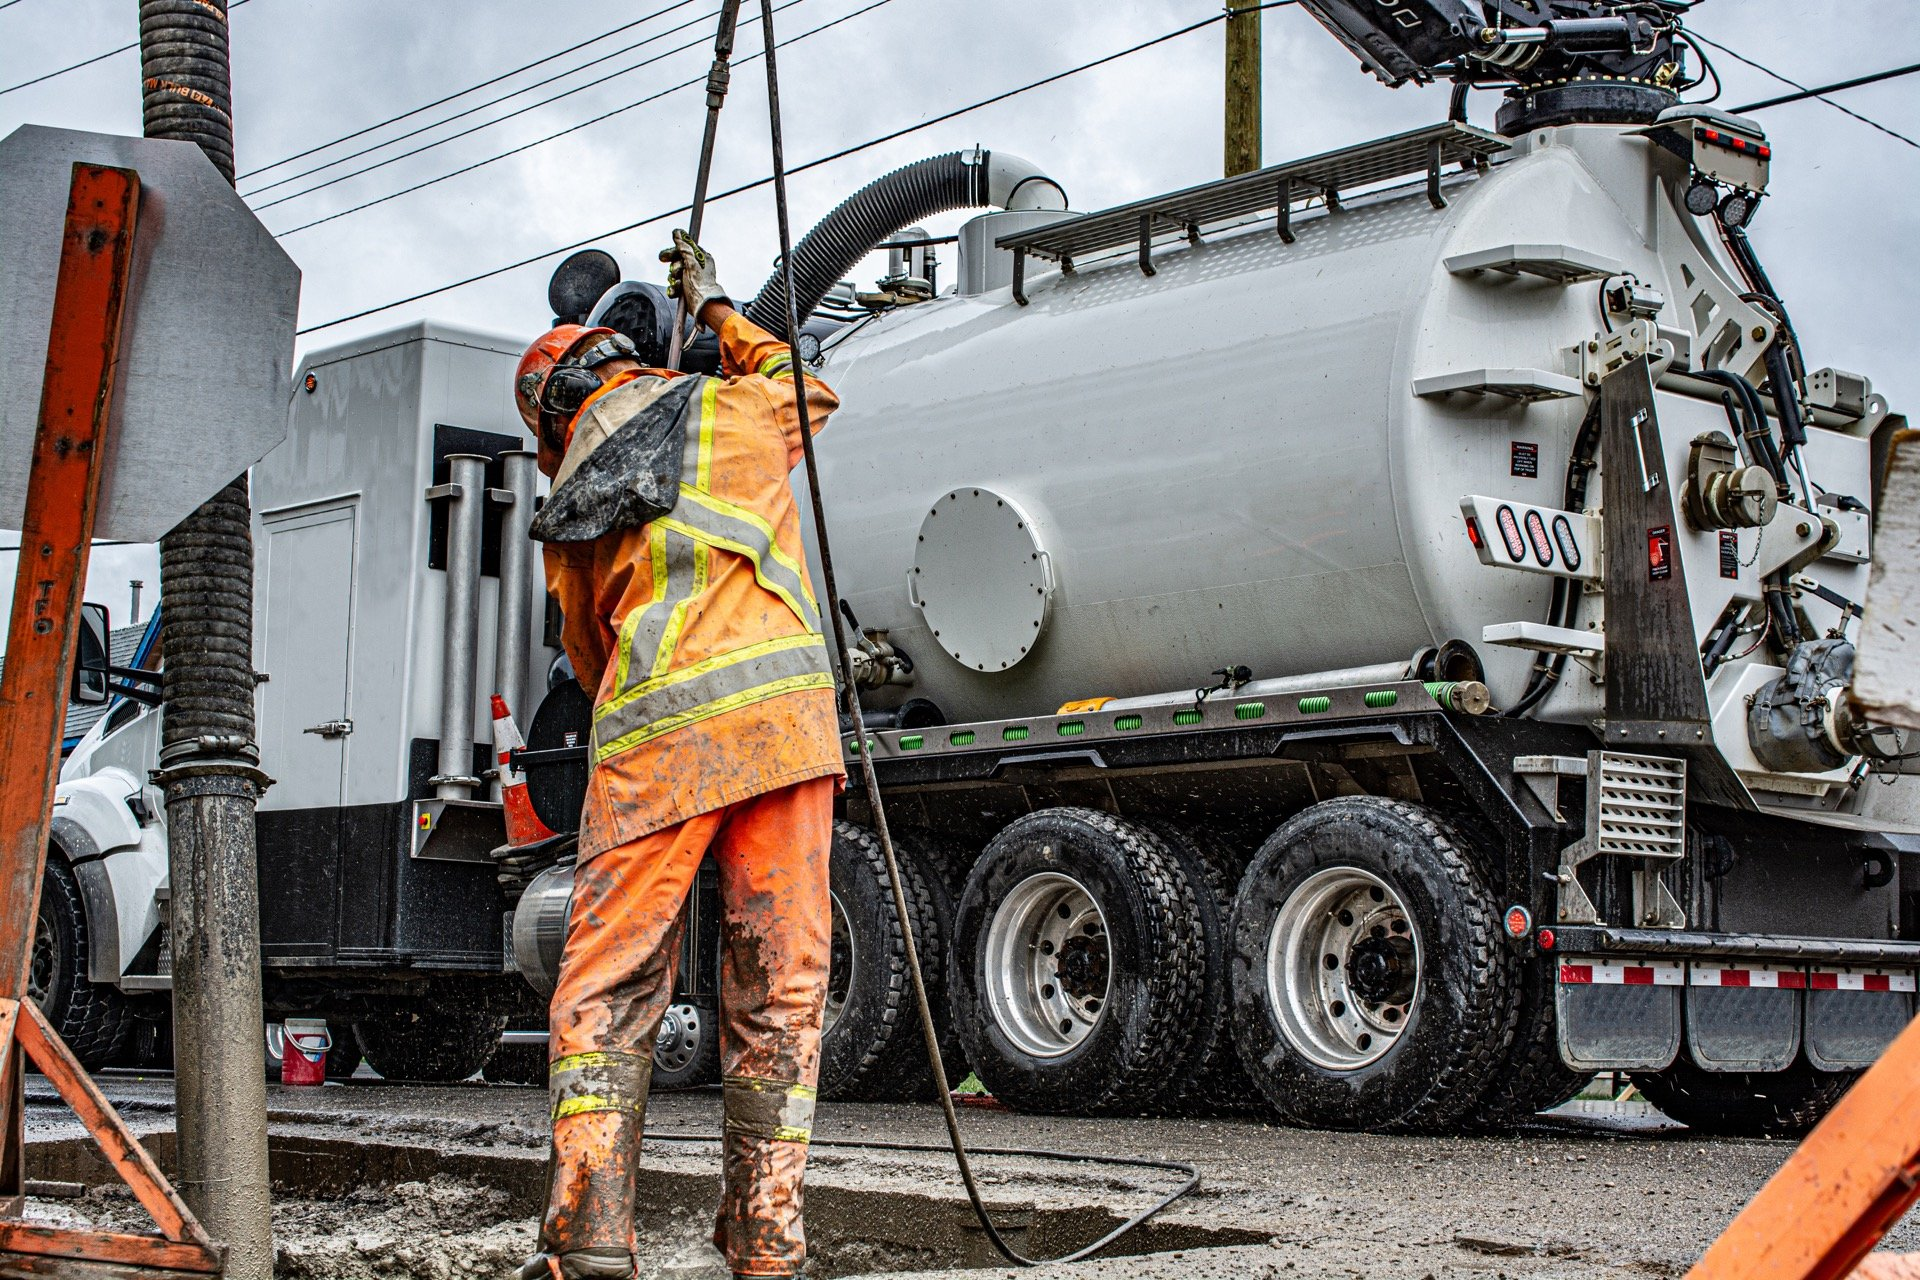 Combo vac truck cleaning up sludge in city